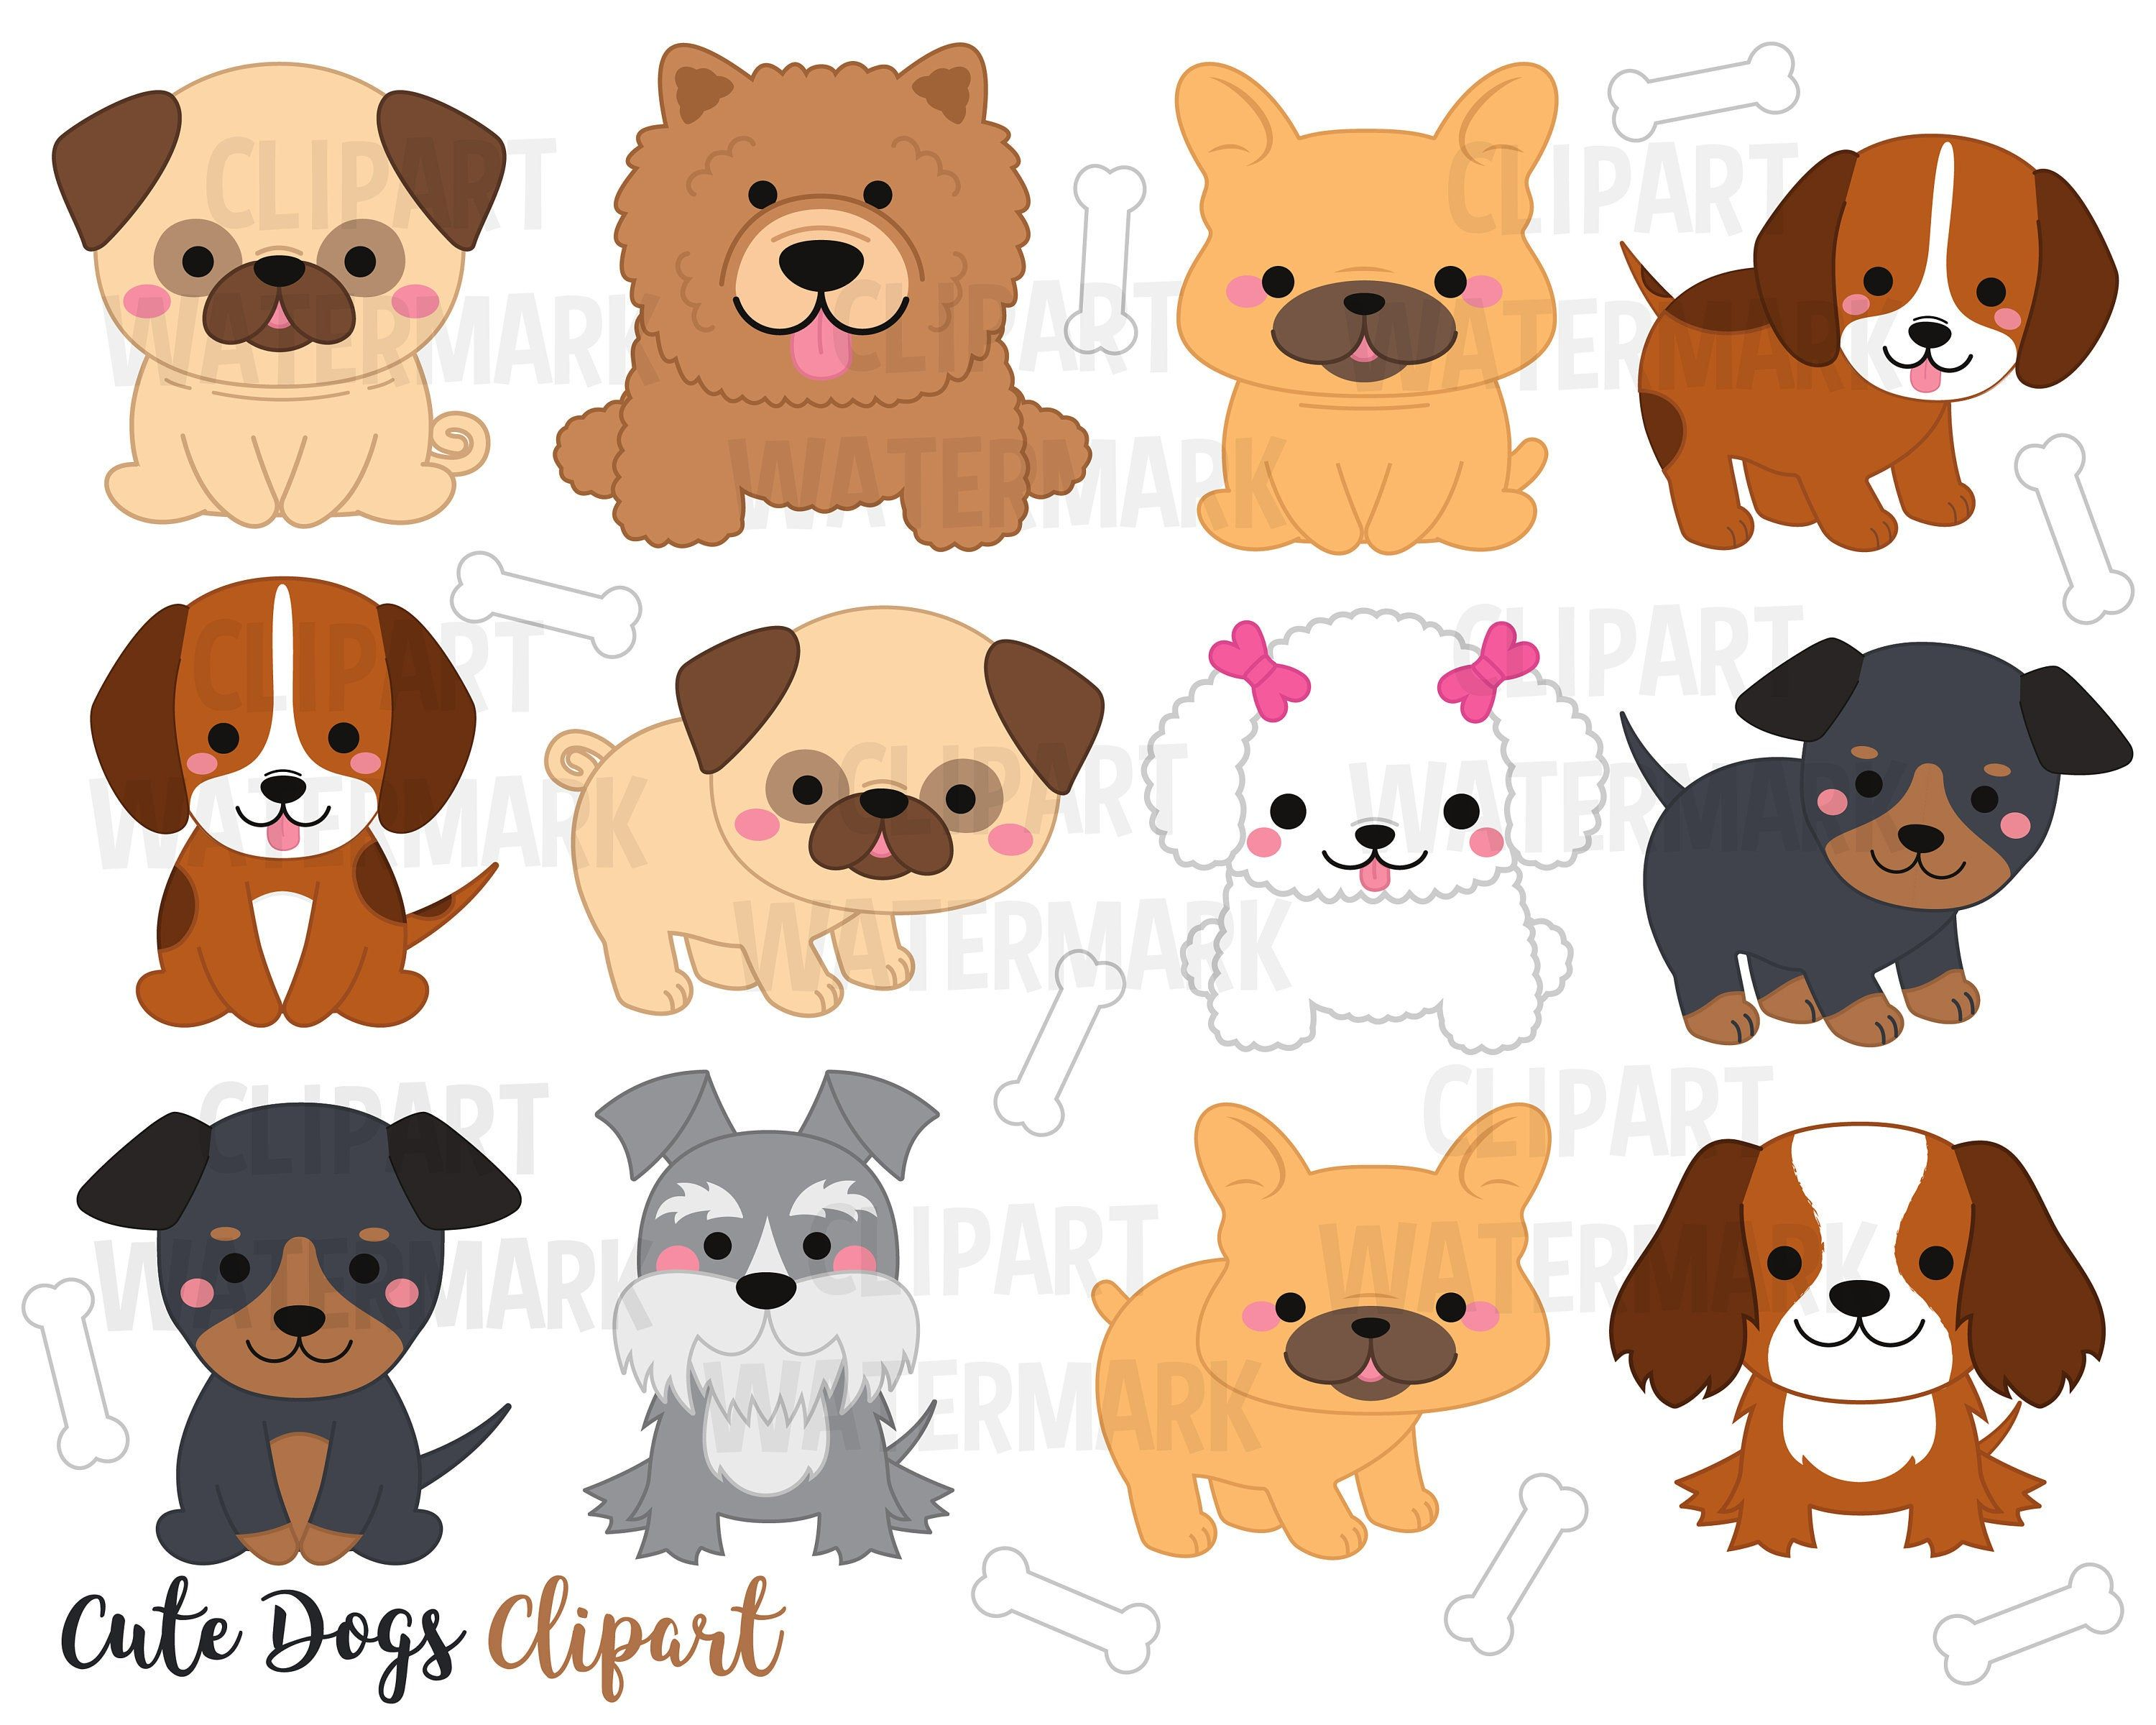 Dogs Clipart Dogs Clip Art Cute Puppy Clipart Kawaii Dogs Etsy Dog Clip Art Puppy Clipart Cute Puppies